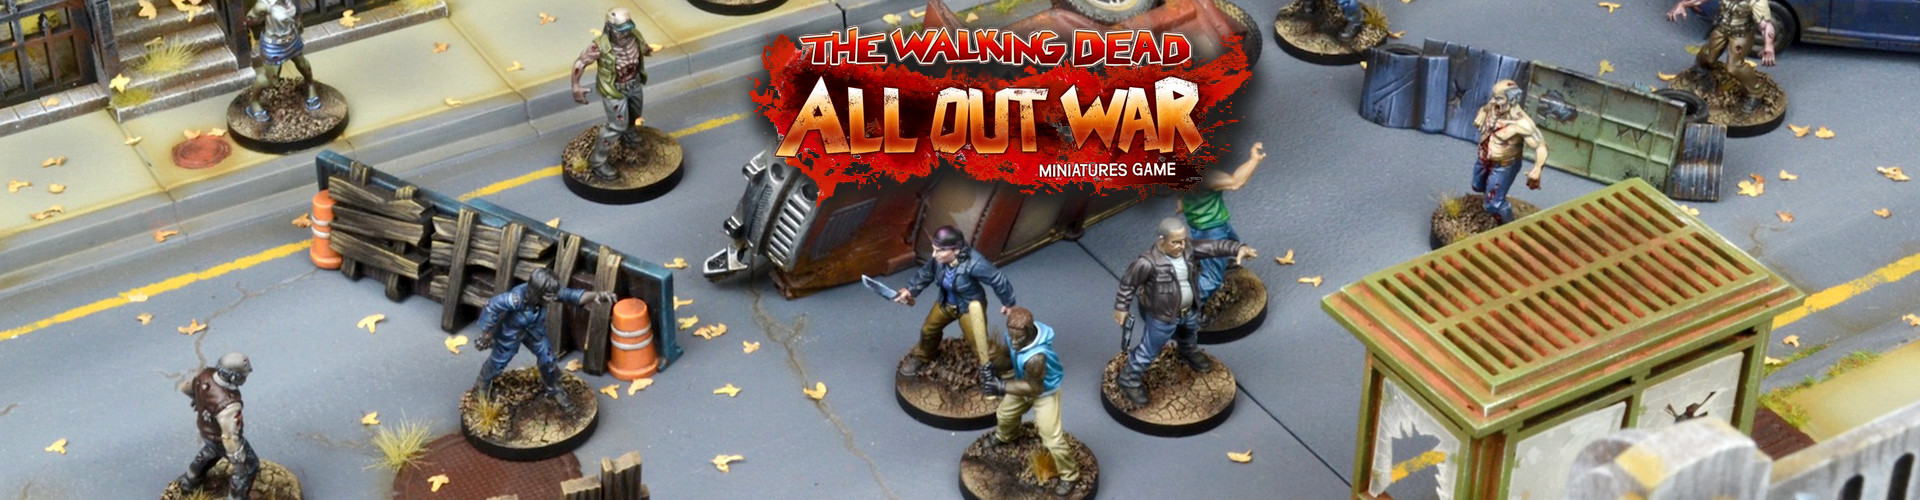 DEMO 18 Walking Dead - Demospiele: THE WALKING DEAD - ALL OUT WAR